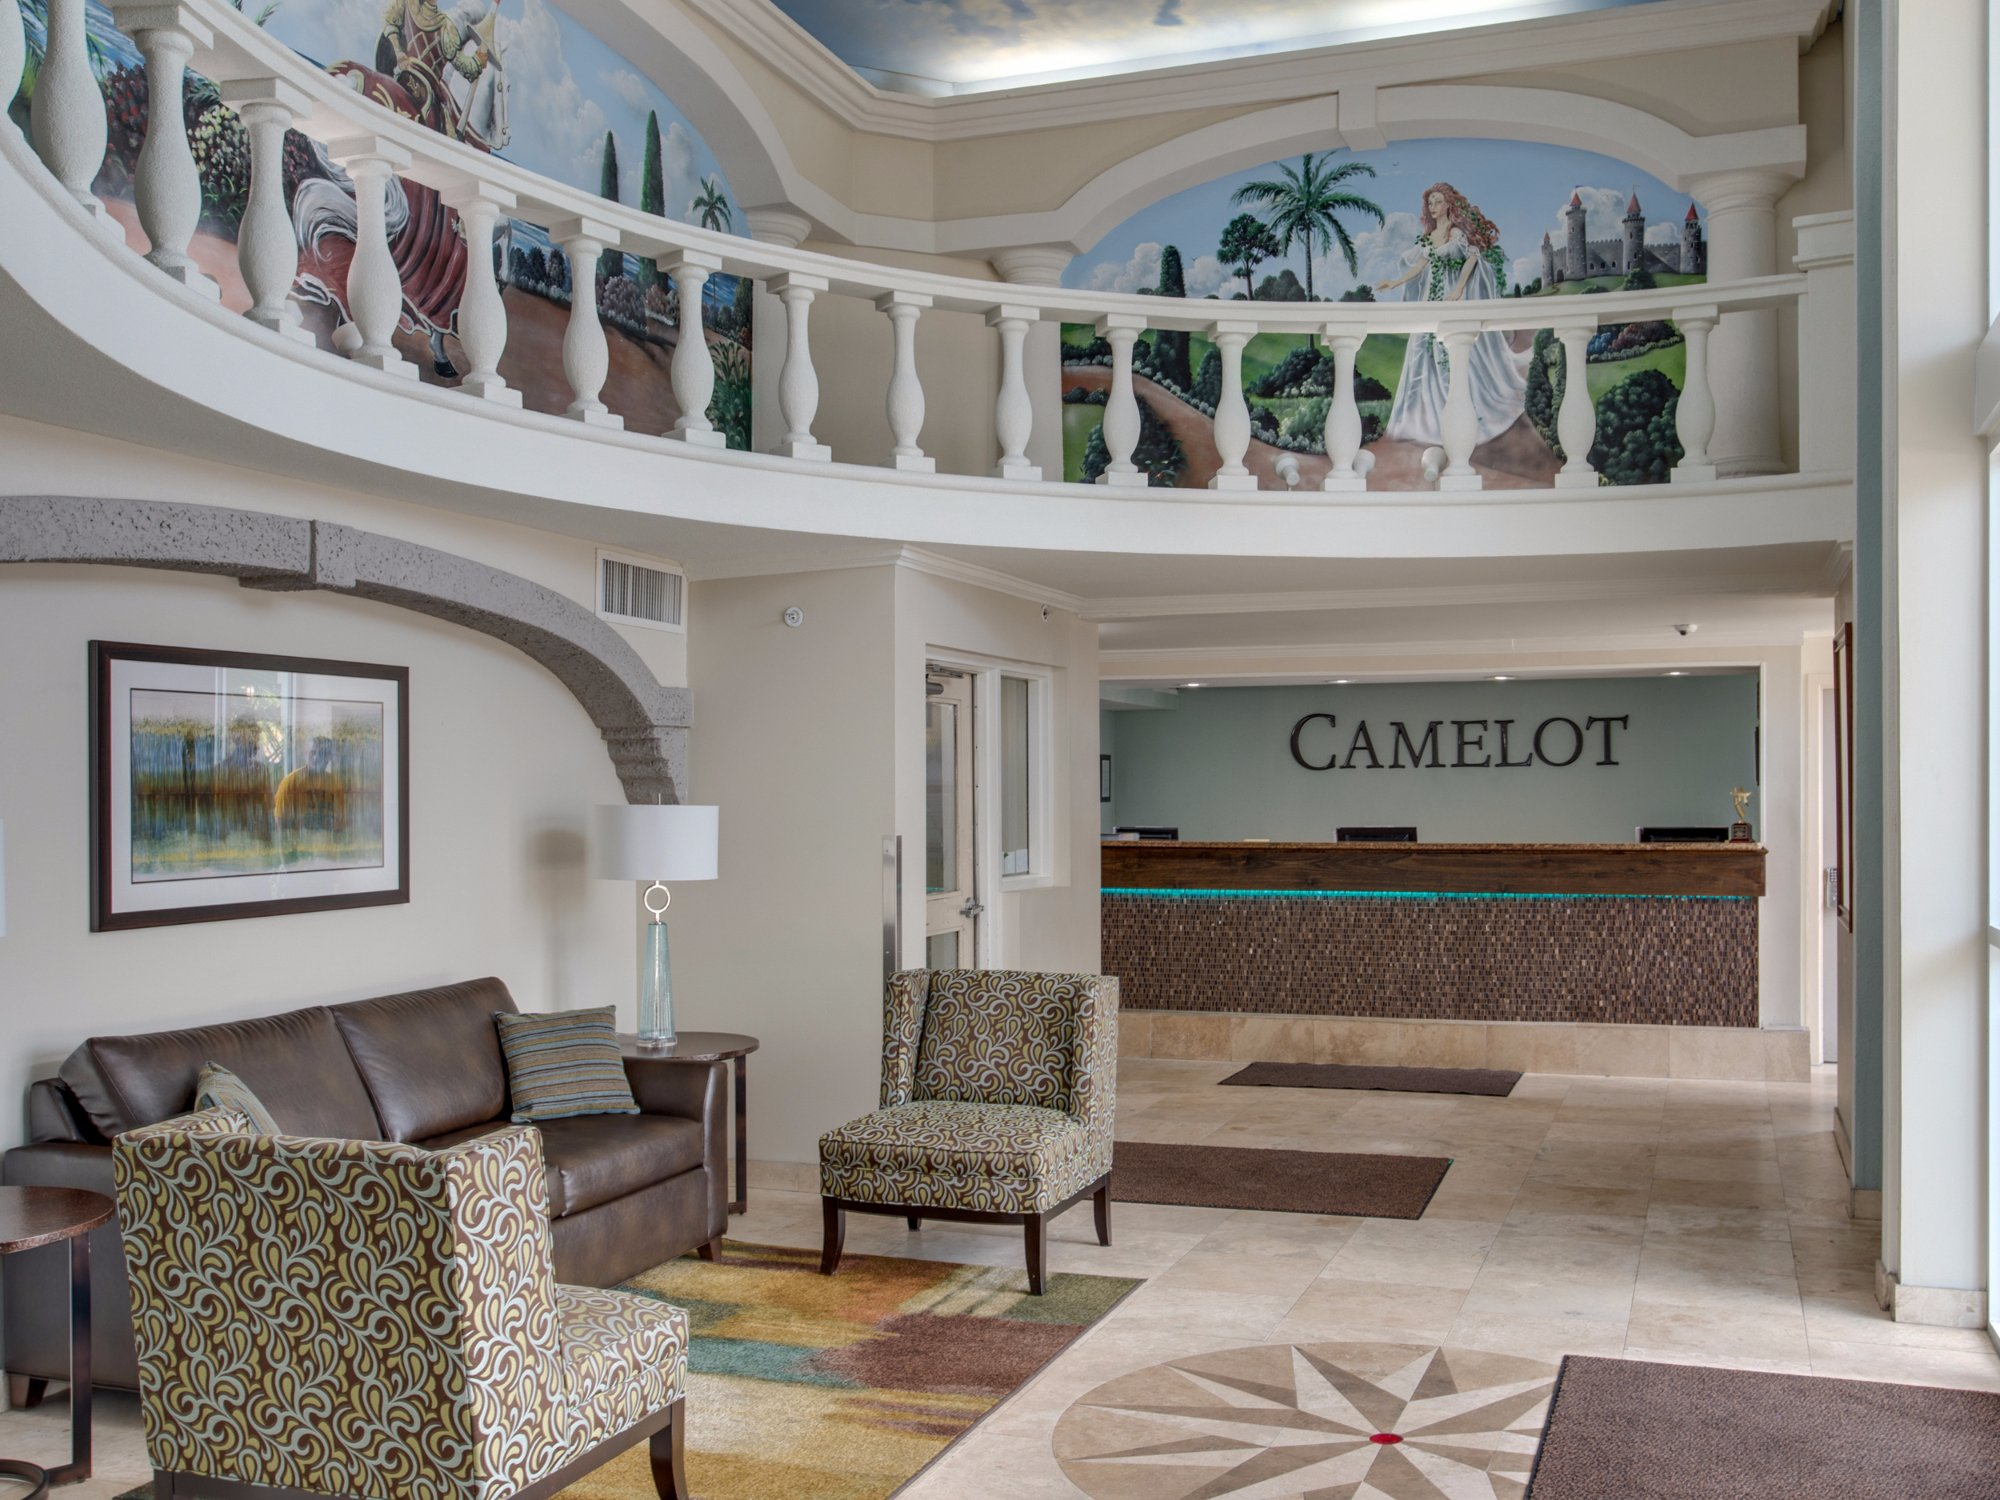 Camelot By The Sea, Oceana Resorts